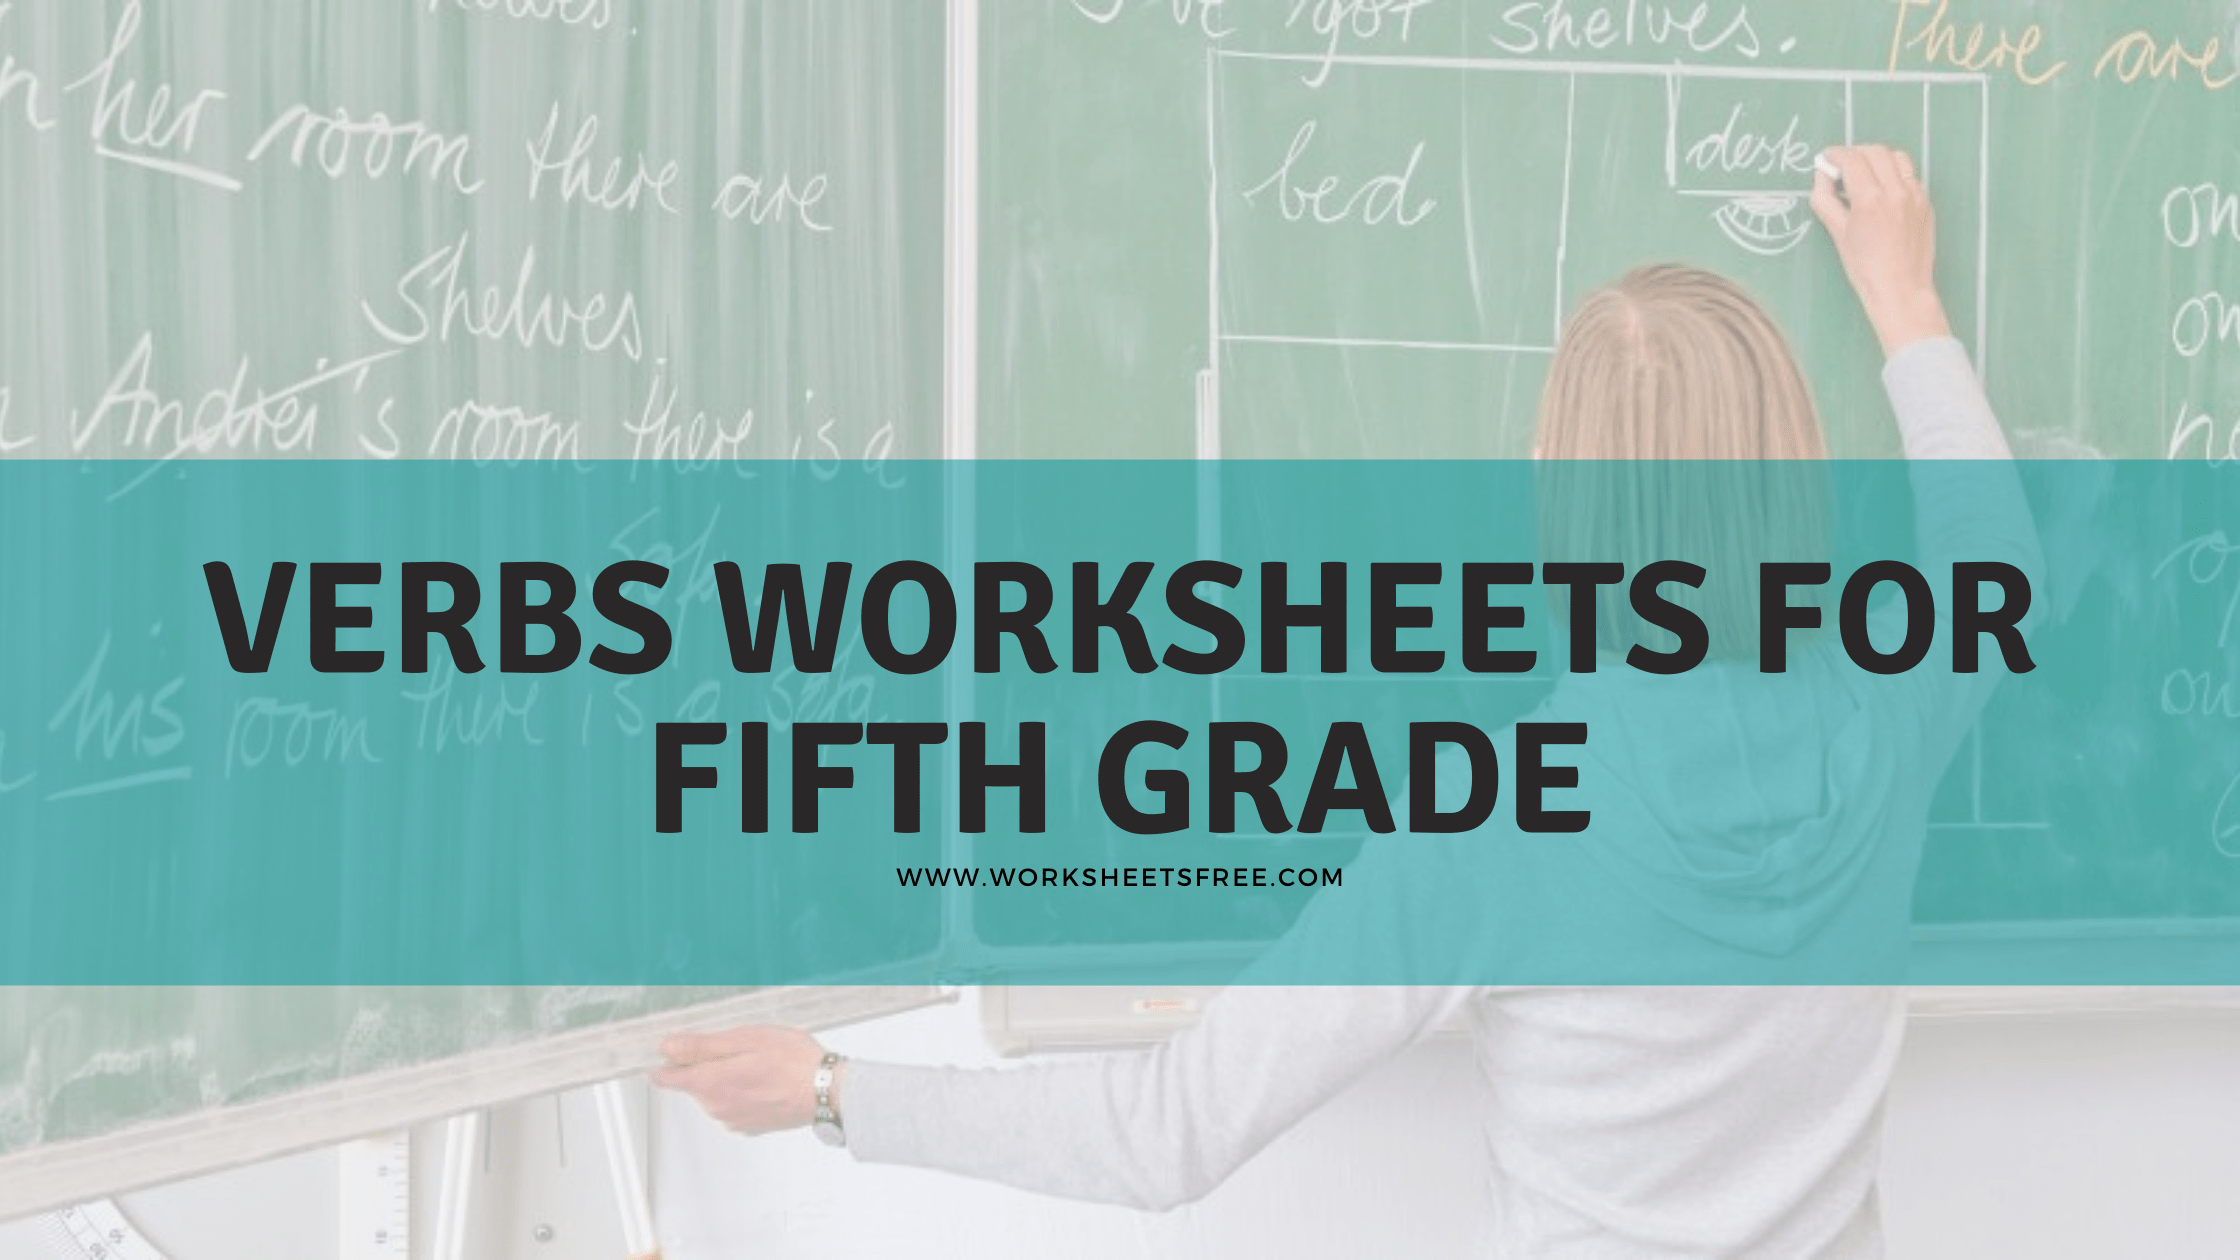 Verbs Worksheets For Fifth Grade